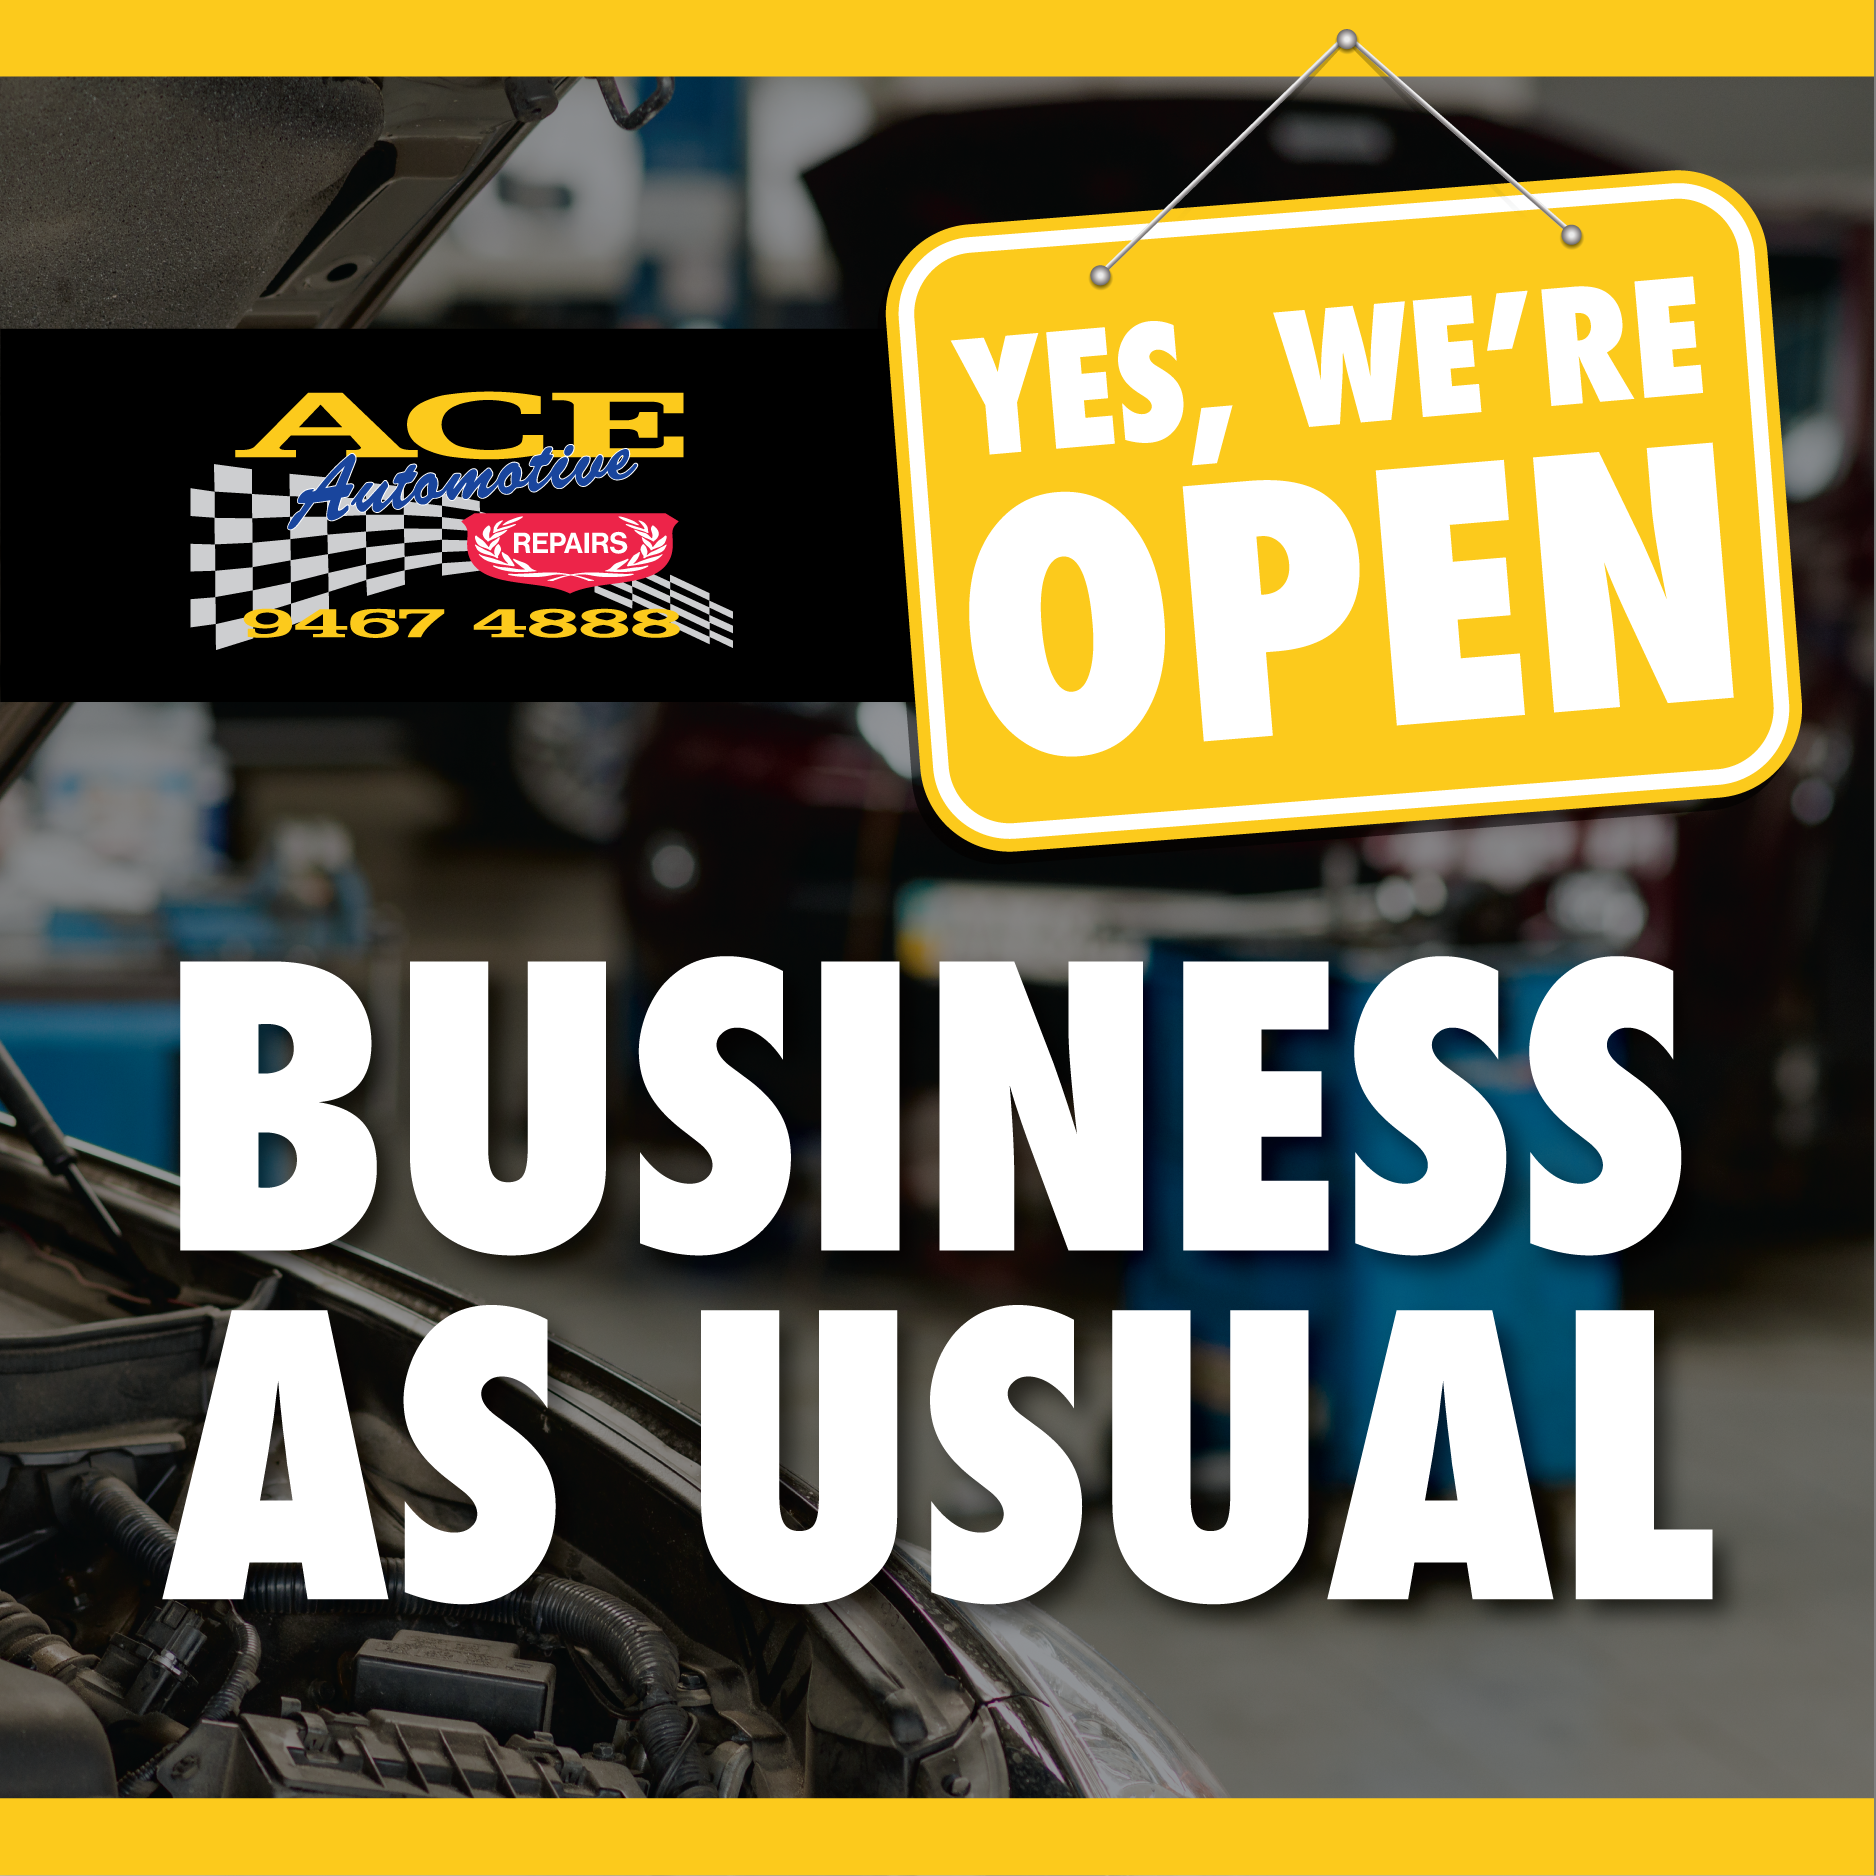 Home - image AceAutomotive_BusinessAsUsual on https://www.aceautomotive.com.au